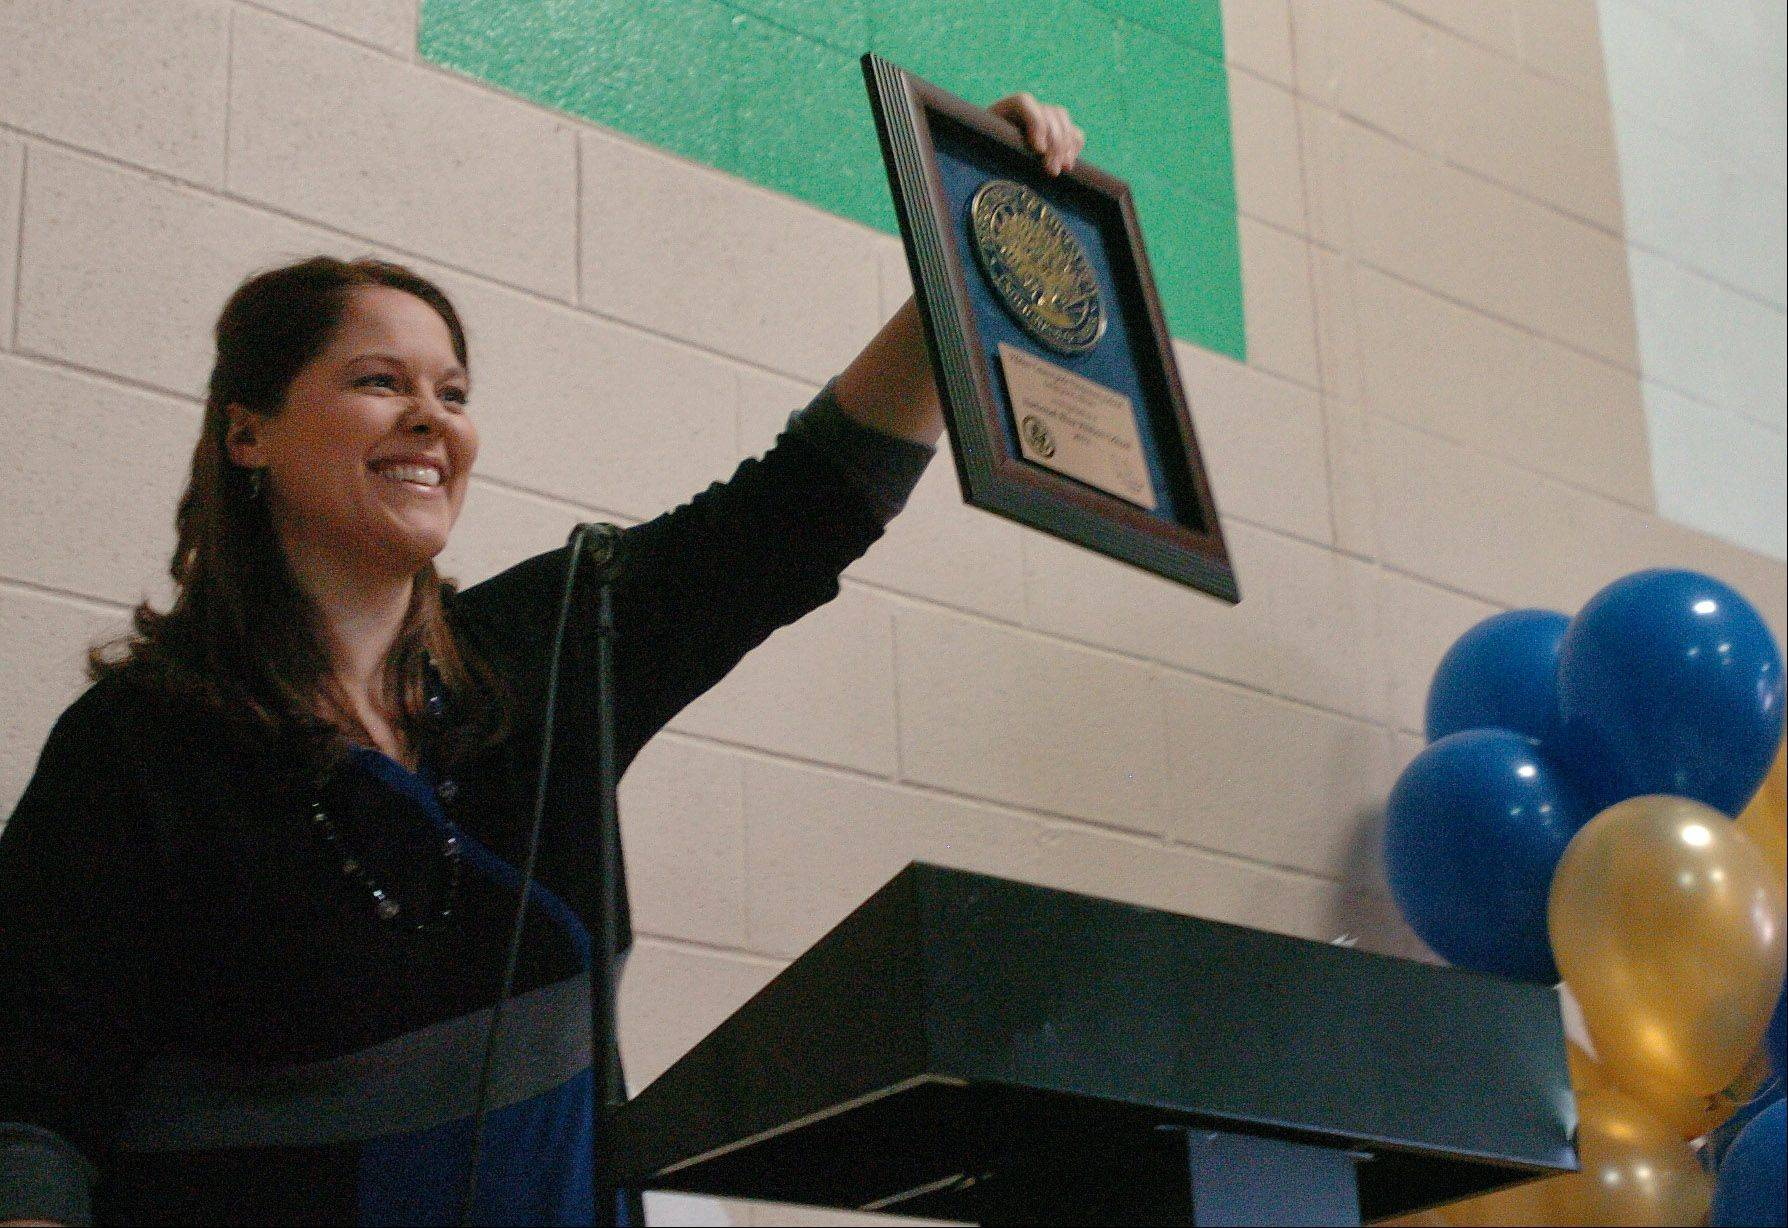 Principal Jennifer Smith holds up the Blue Ribbon plaque, to the delight of assembled students and staff.